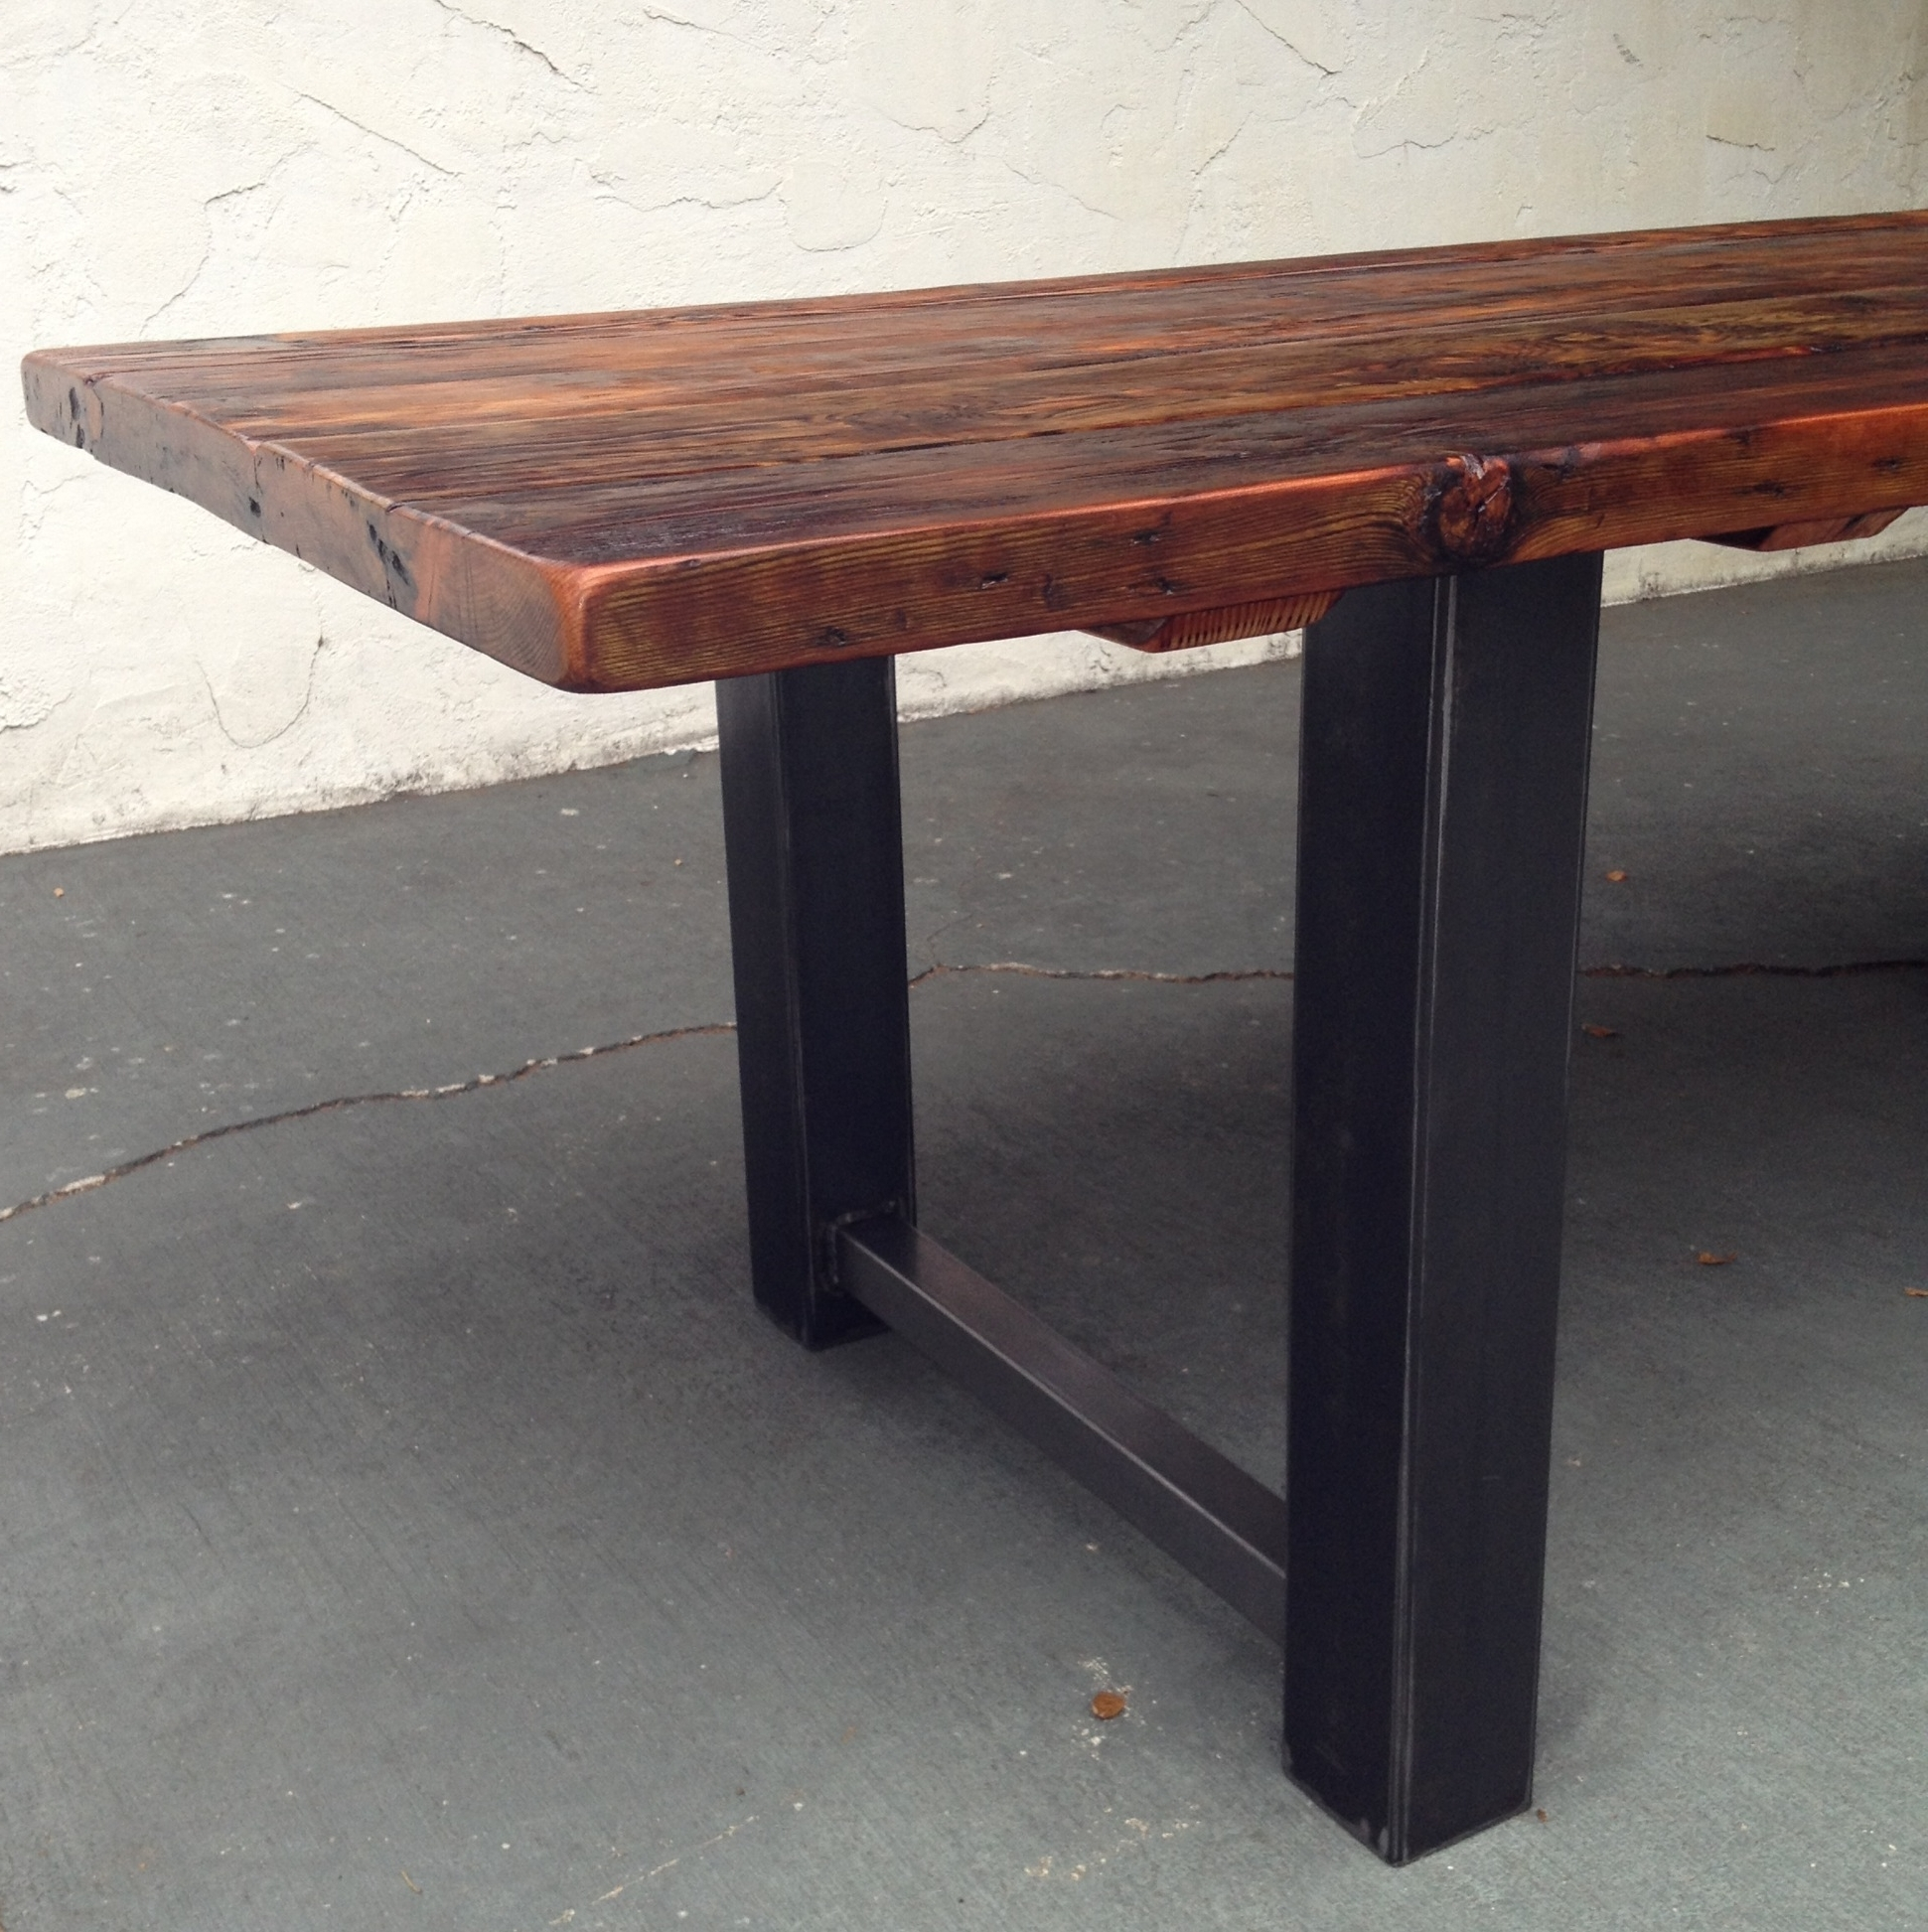 The Coastal Craftsman Pertaining To Iron And Wood Dining Tables (View 23 of 25)